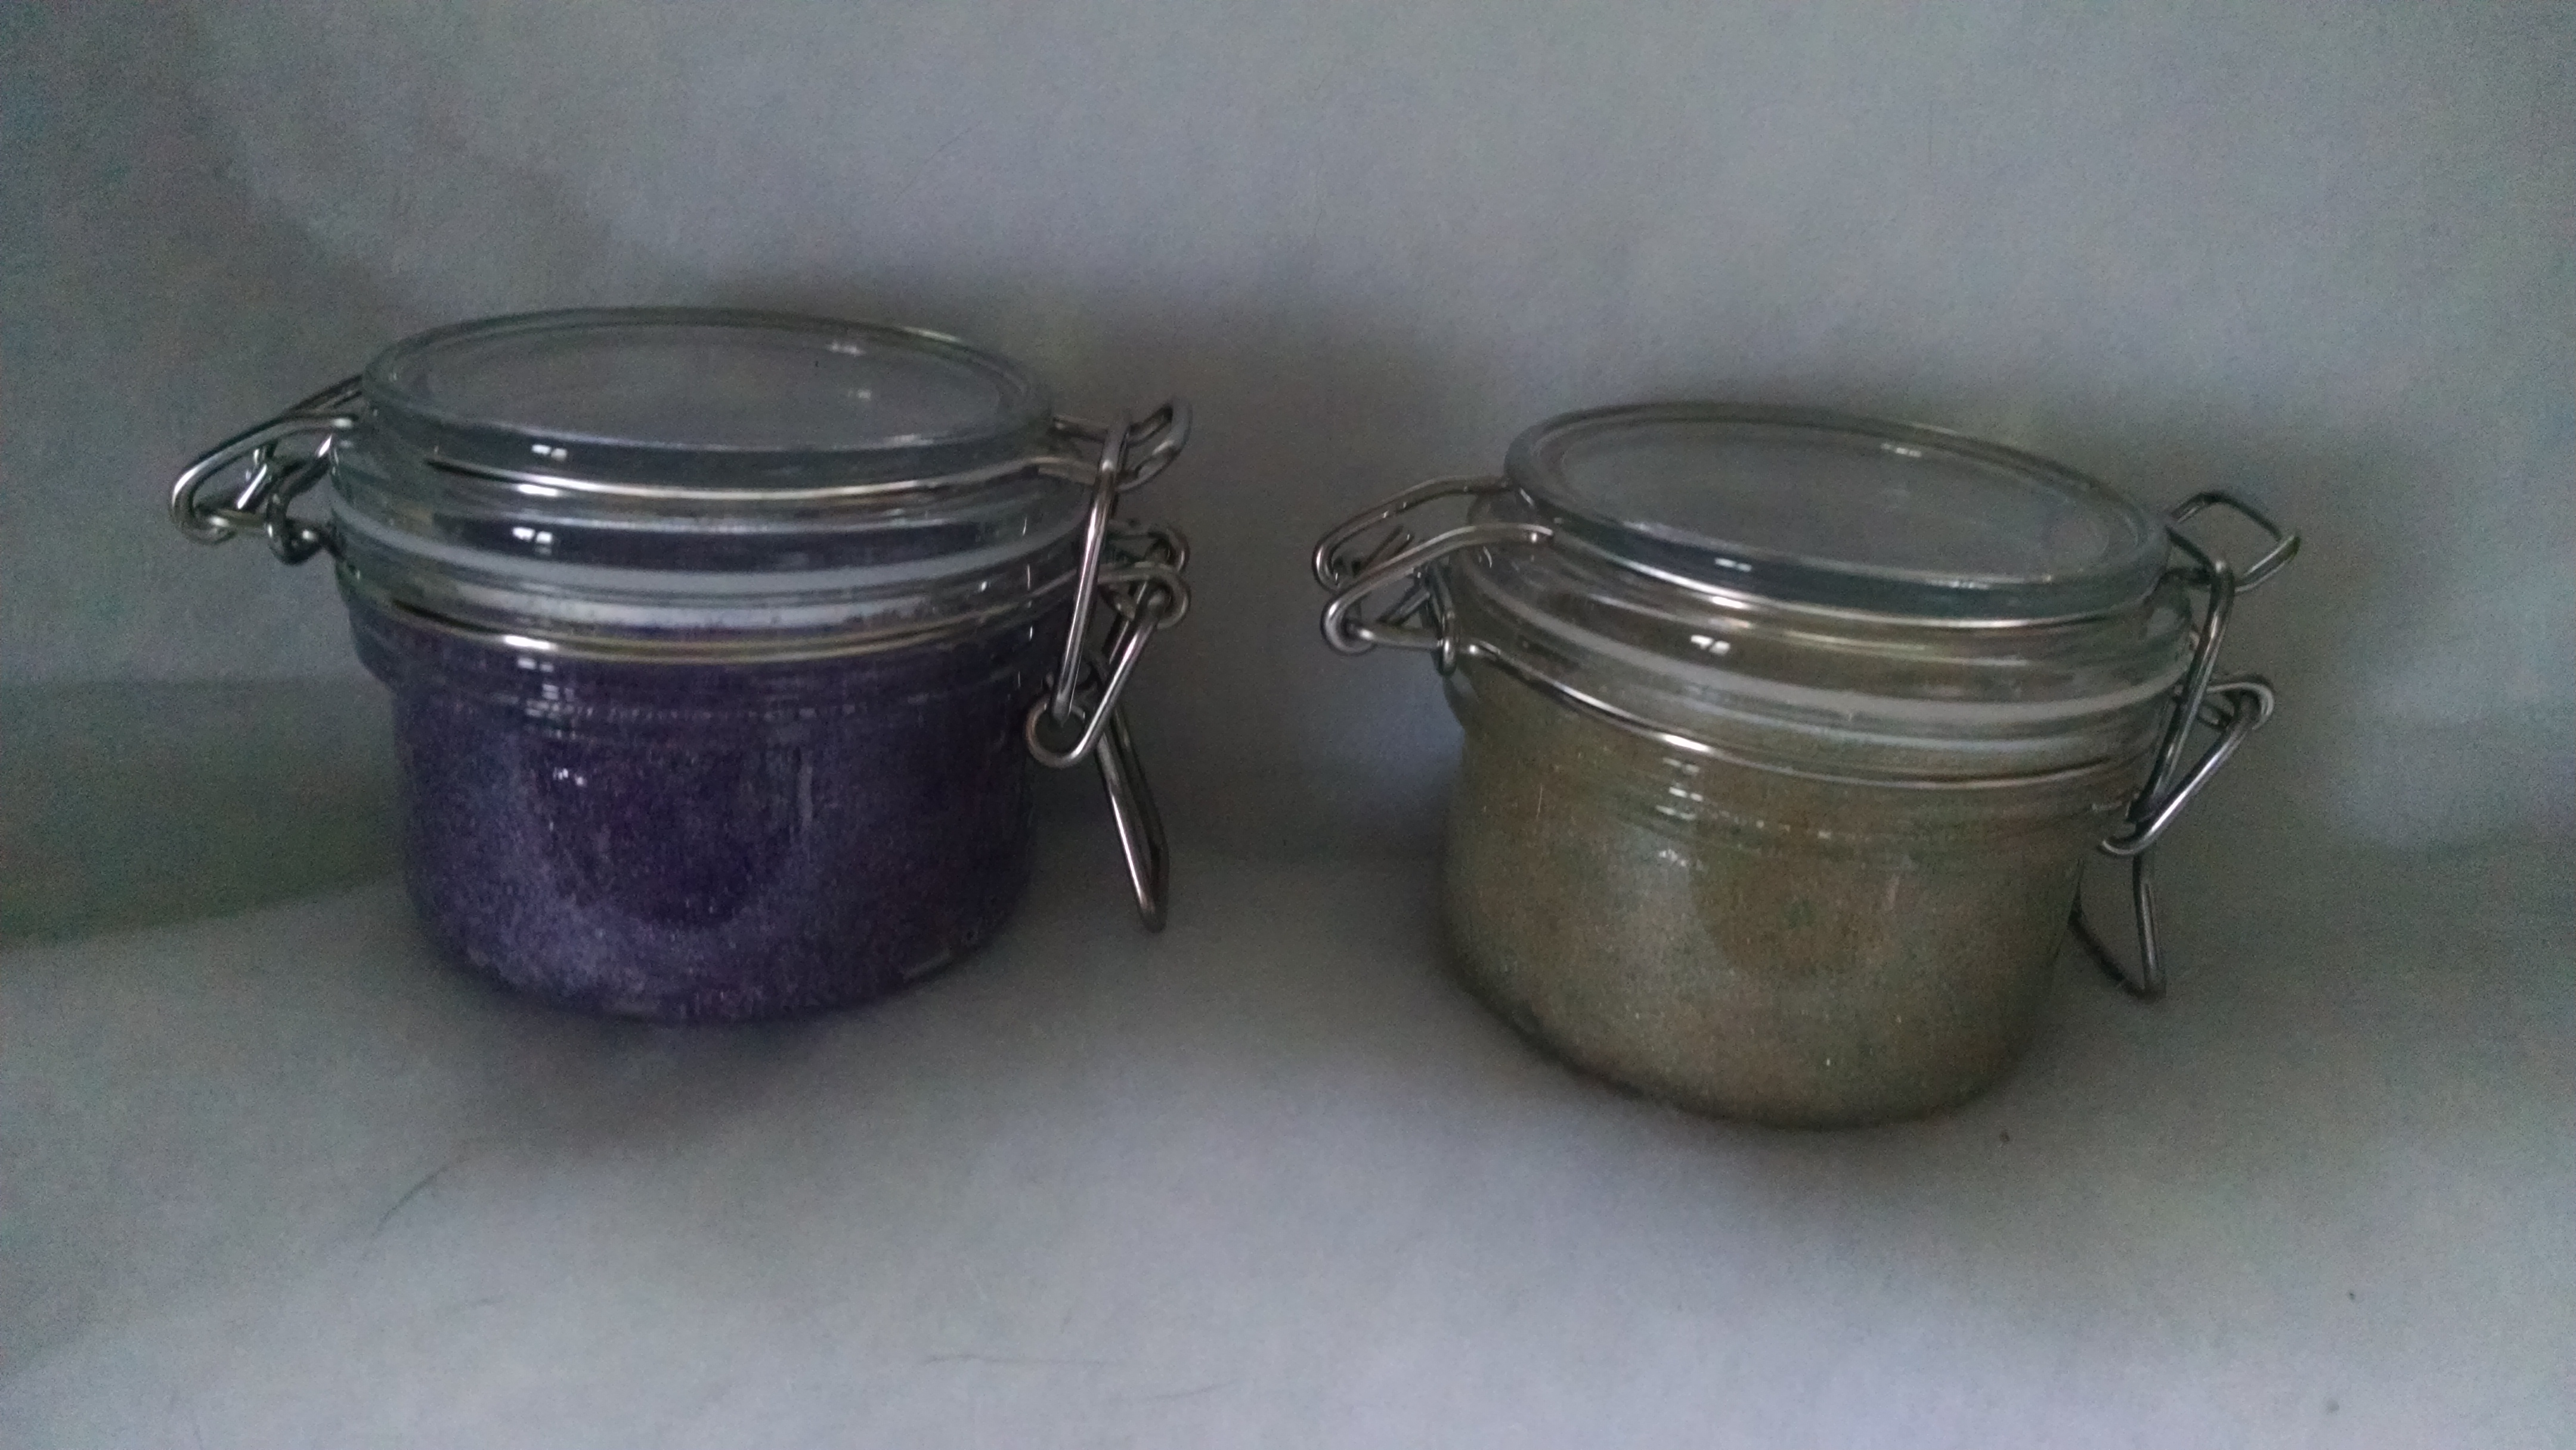 Sugar scrubs turn your shower into a spa experience! The sugar is a mild exfoliant to gently remove dry skin, and the oils moisturize. Scrubs contain preservatives to prevent bacteria growth when water inevitably gets into the container while showering.  Directions: Scoop scrub with your fingers and gently rub over your skin. Rinse off and wash as normal.